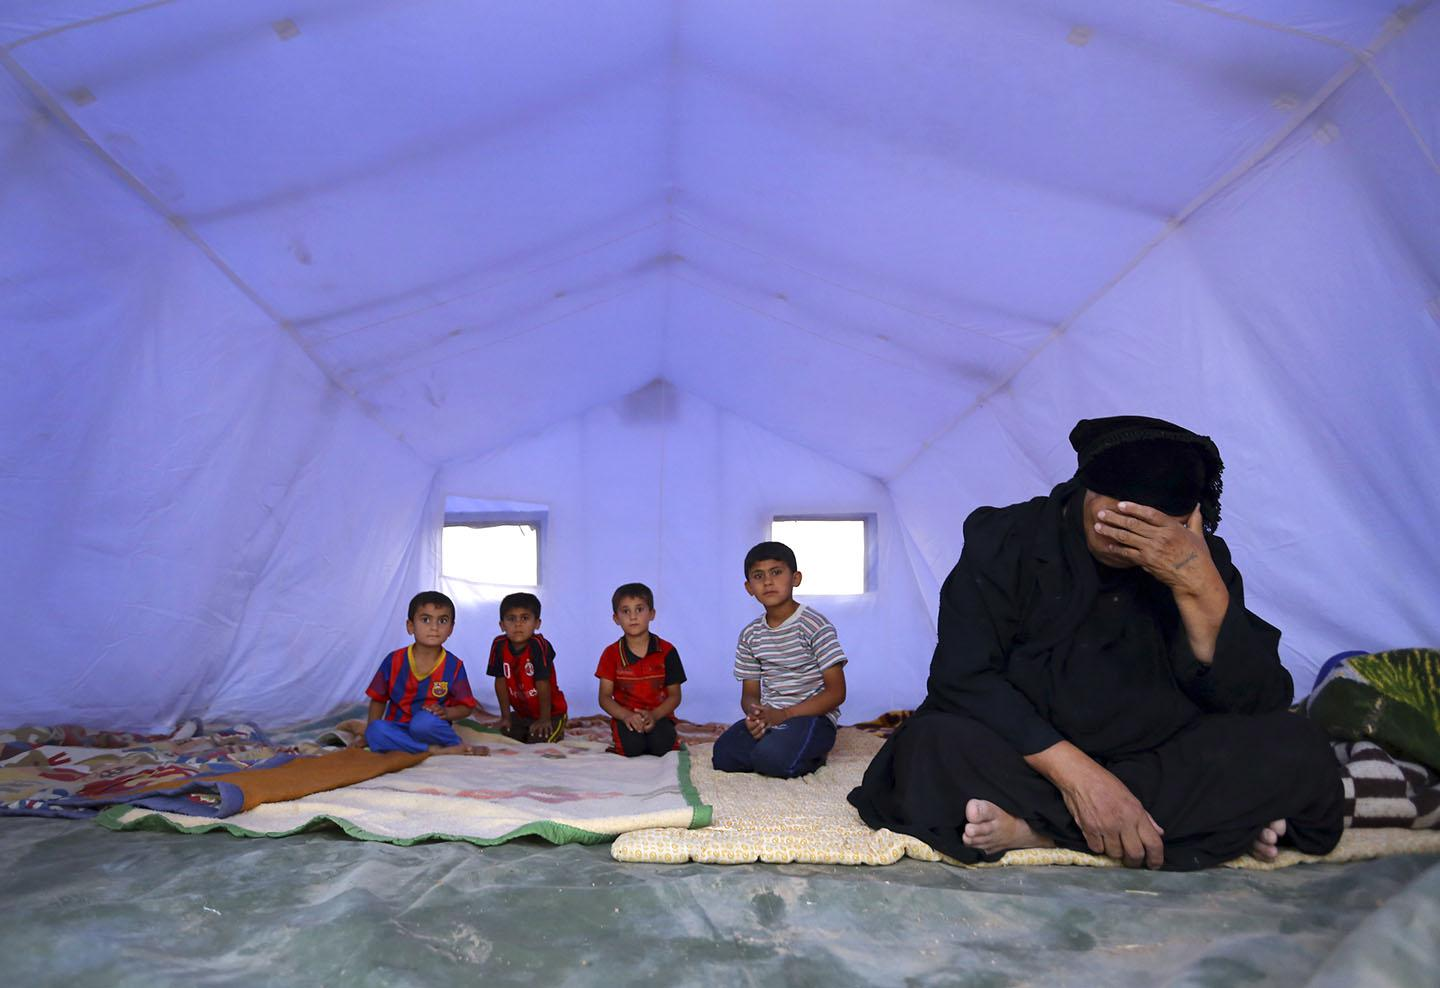 A family, who fled from the violence in Mosul, sits inside a tent at a camp on the outskirts of Erbil in Iraq's Kurdistan region, June 12, 2014.